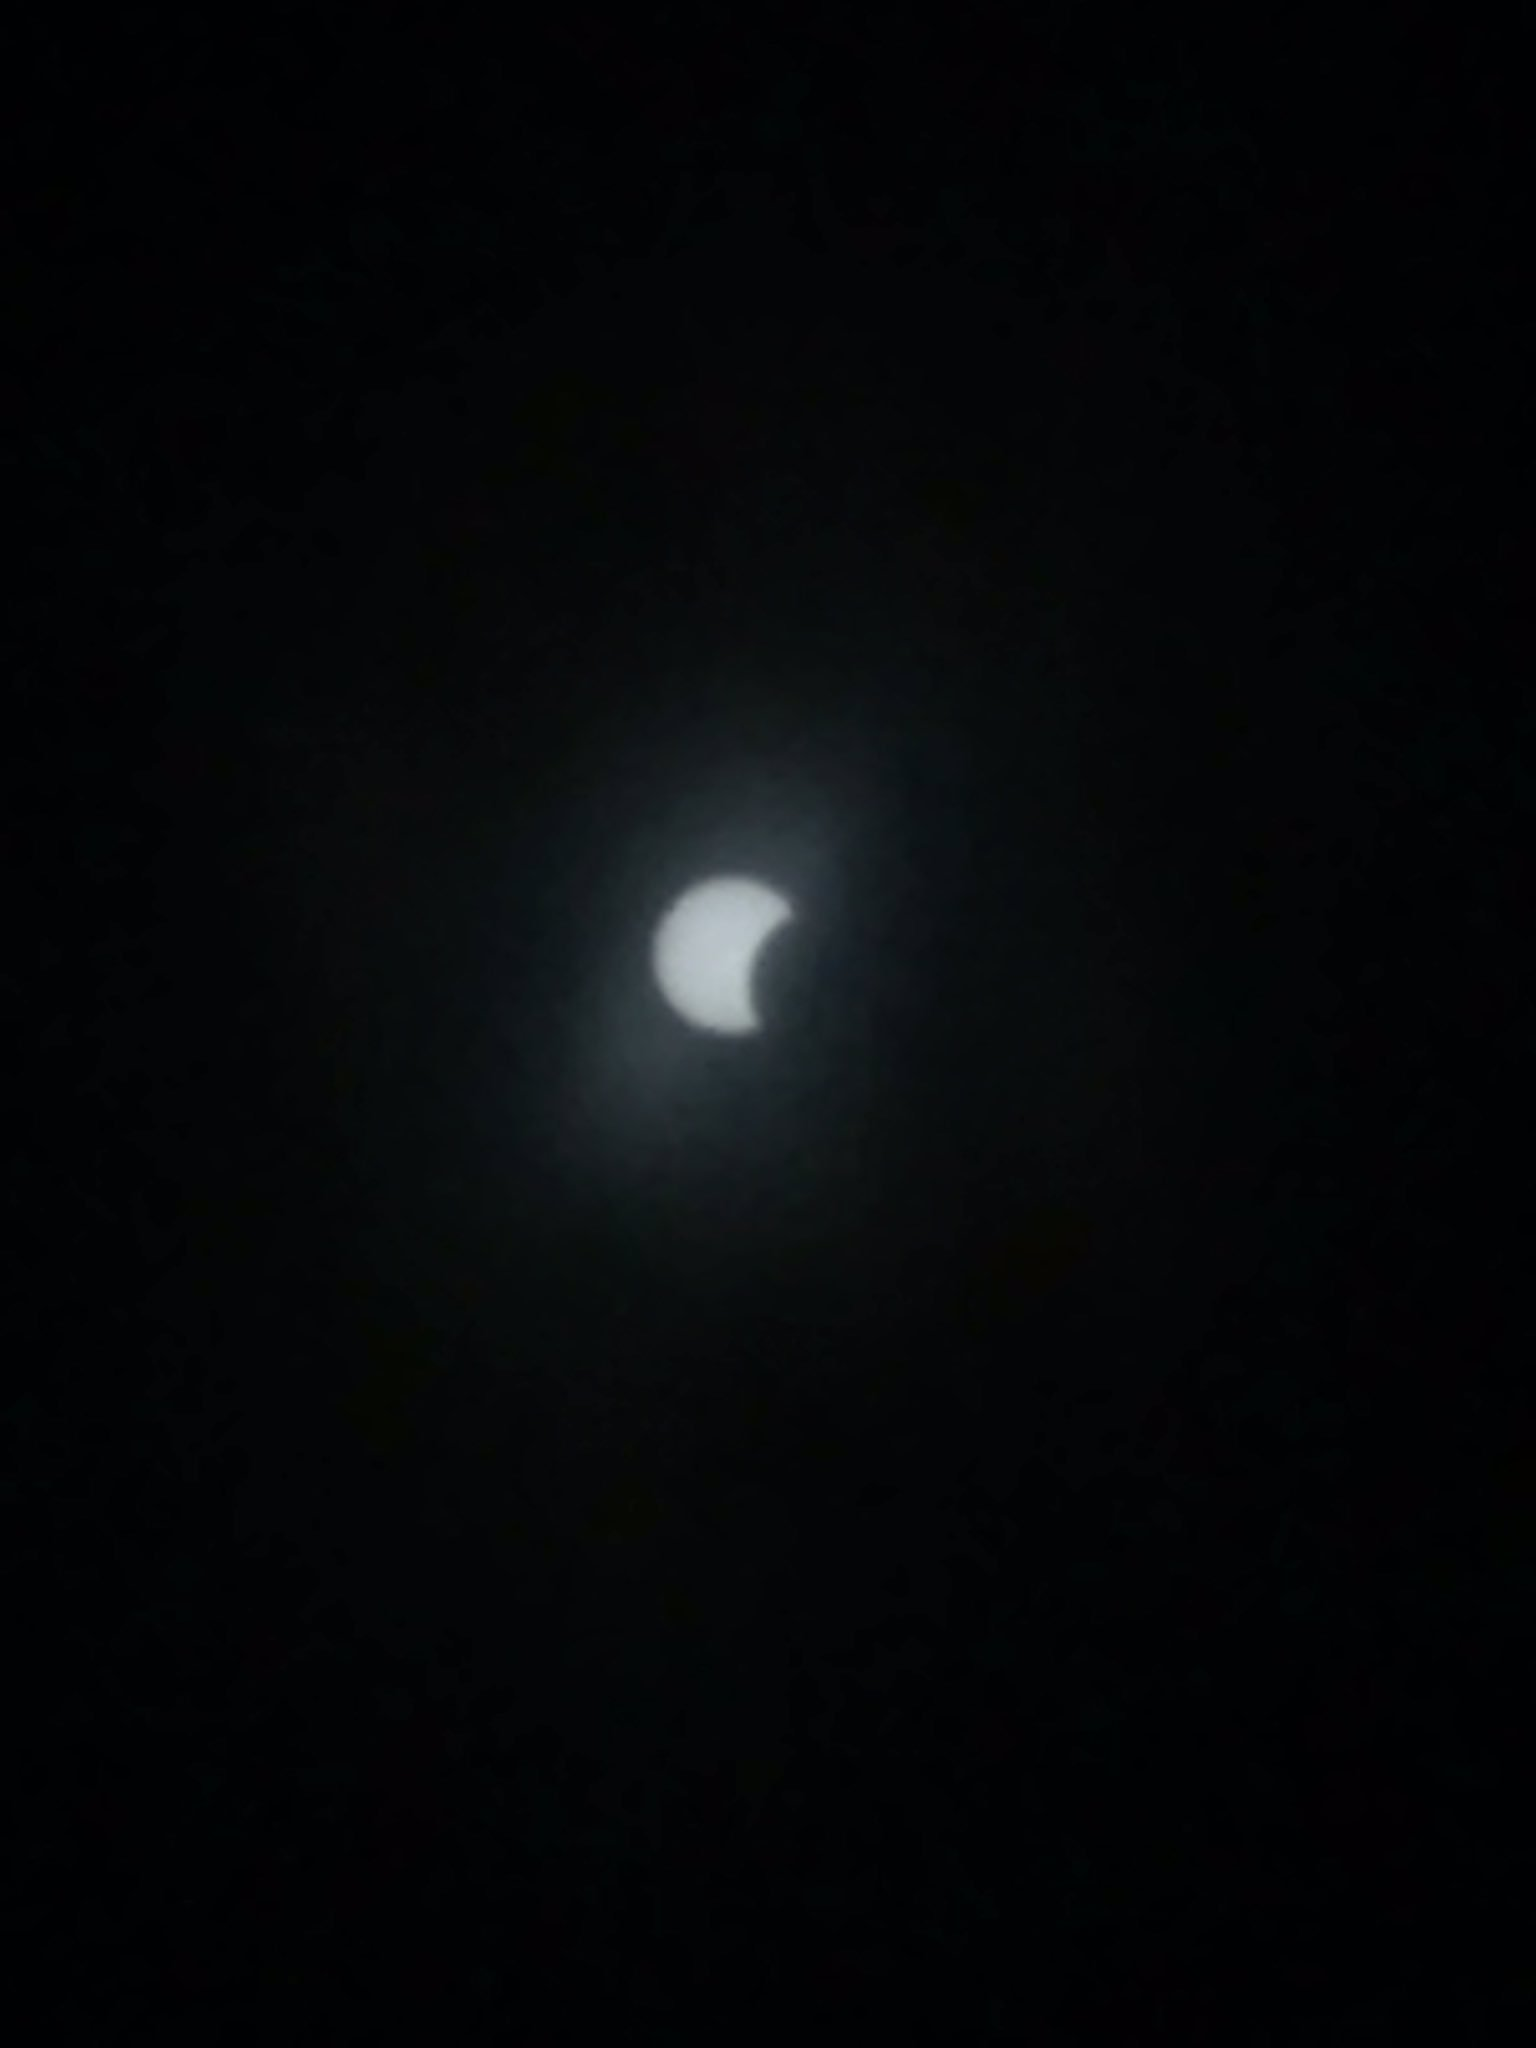 Eclipse starting in NYC. iPhone 10x zoom through my glasses, heh. https://t.co/kcdz5qpmuQ